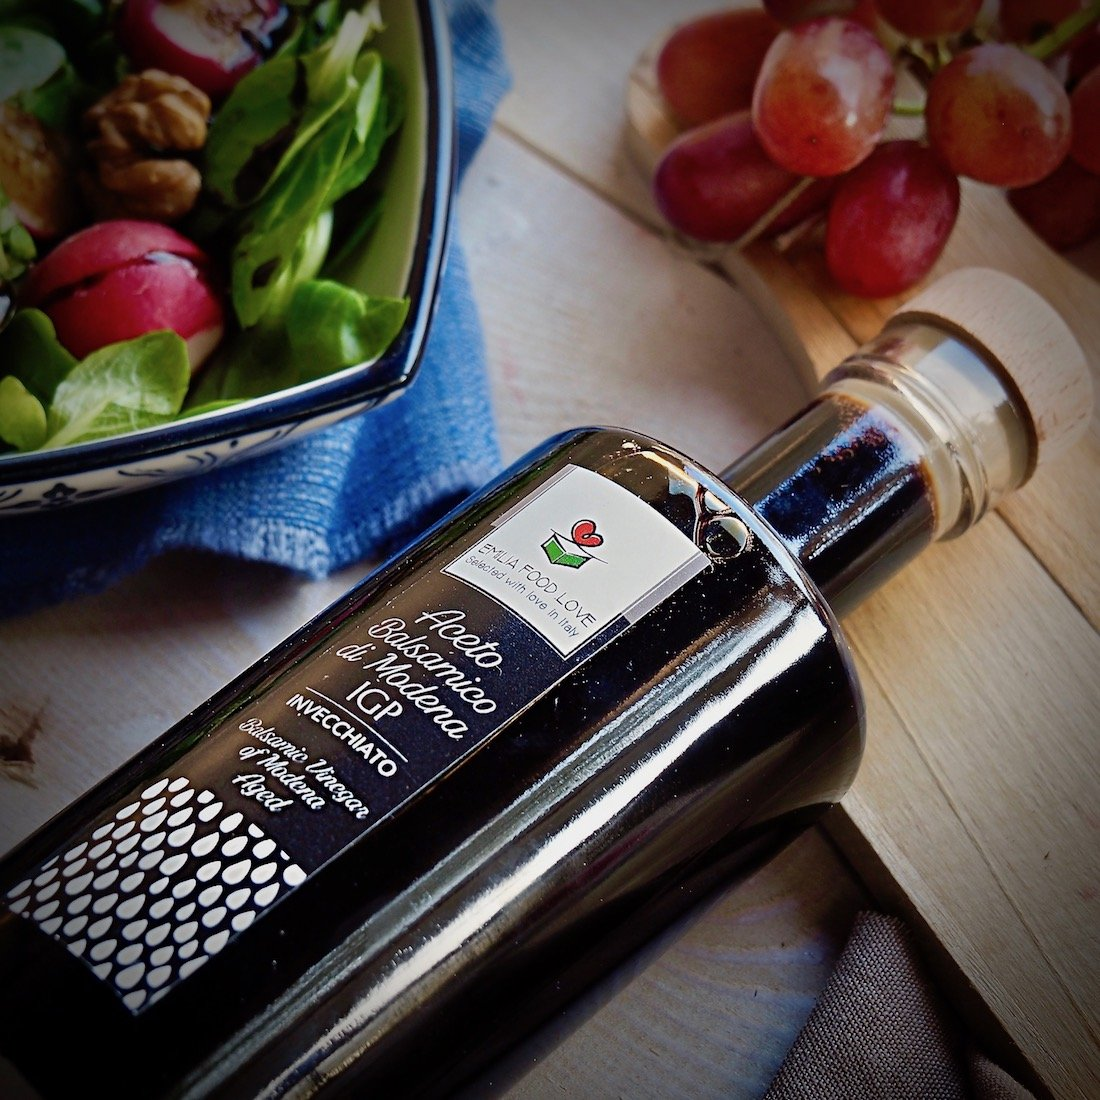 Balsamic Vinegar of Modena IGP AGED - Made in Italy - EMILIA FOOD LOVE - Selected with Love in Italy - Aceto Balsamico di Modena IGP Invecchiato by EMILIA FOOD LOVE (Image #6)